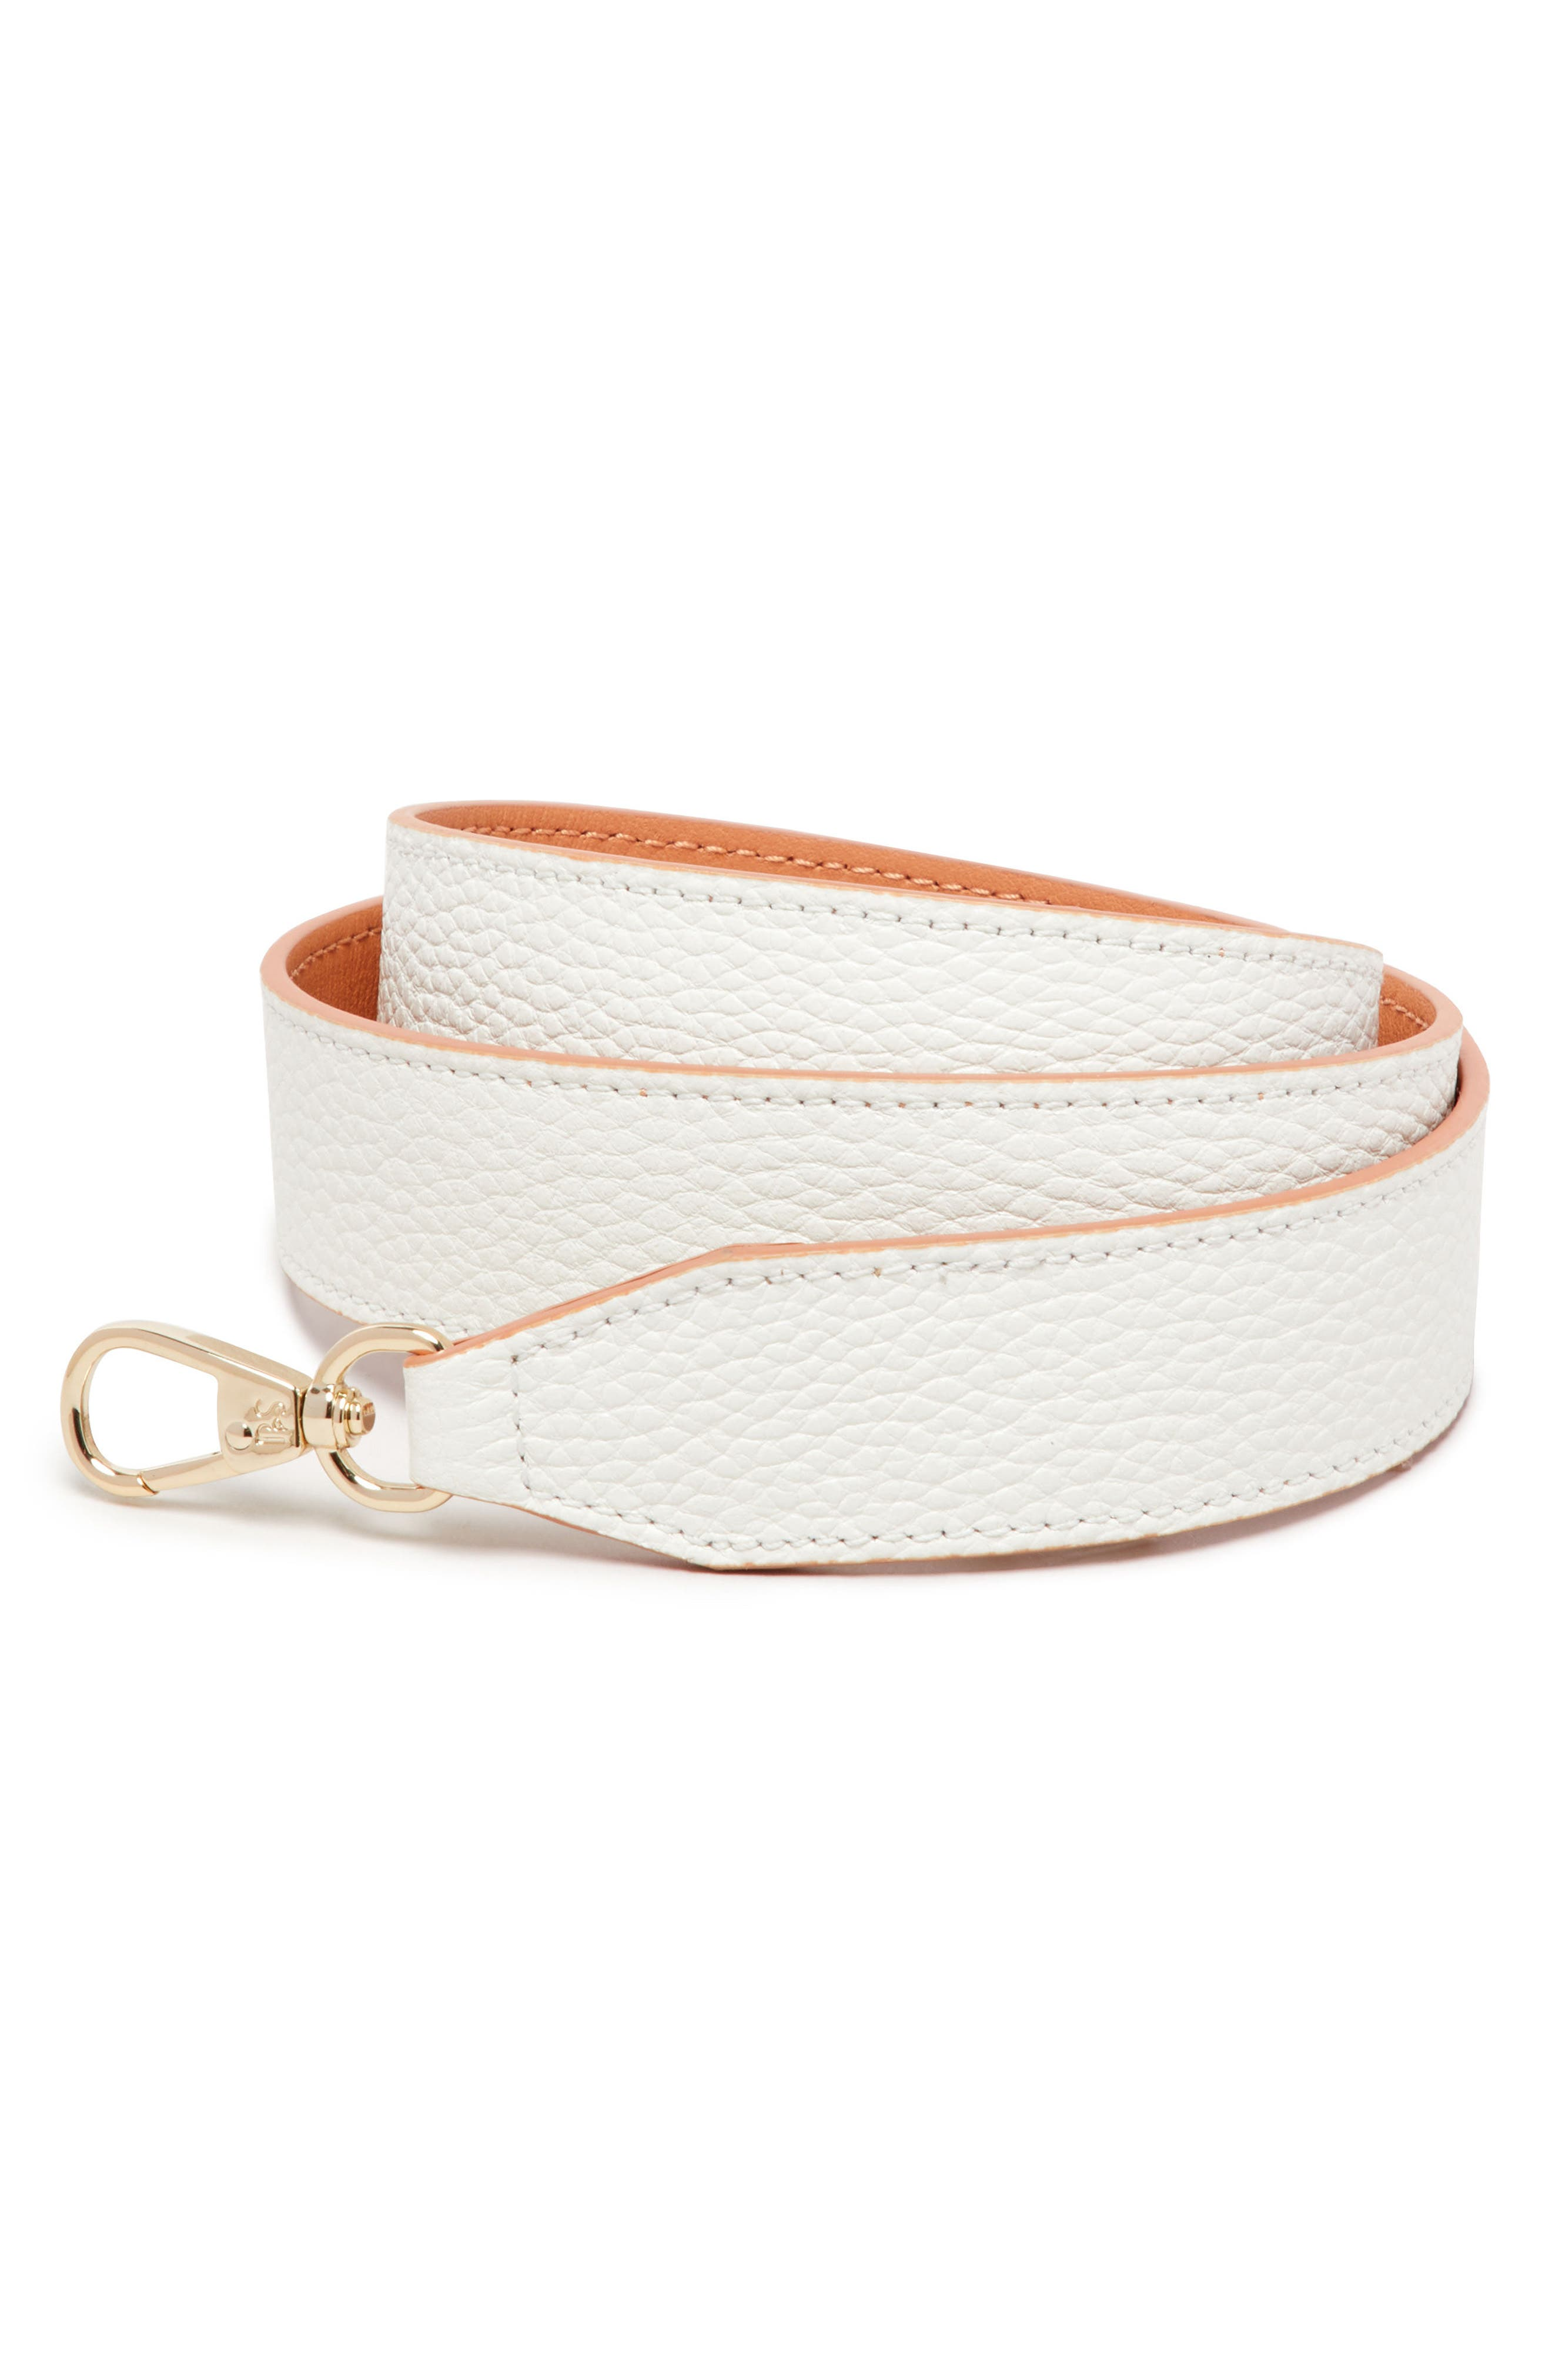 POP & SUKI Wide Pebbled Leather Strap, Main, color, 101